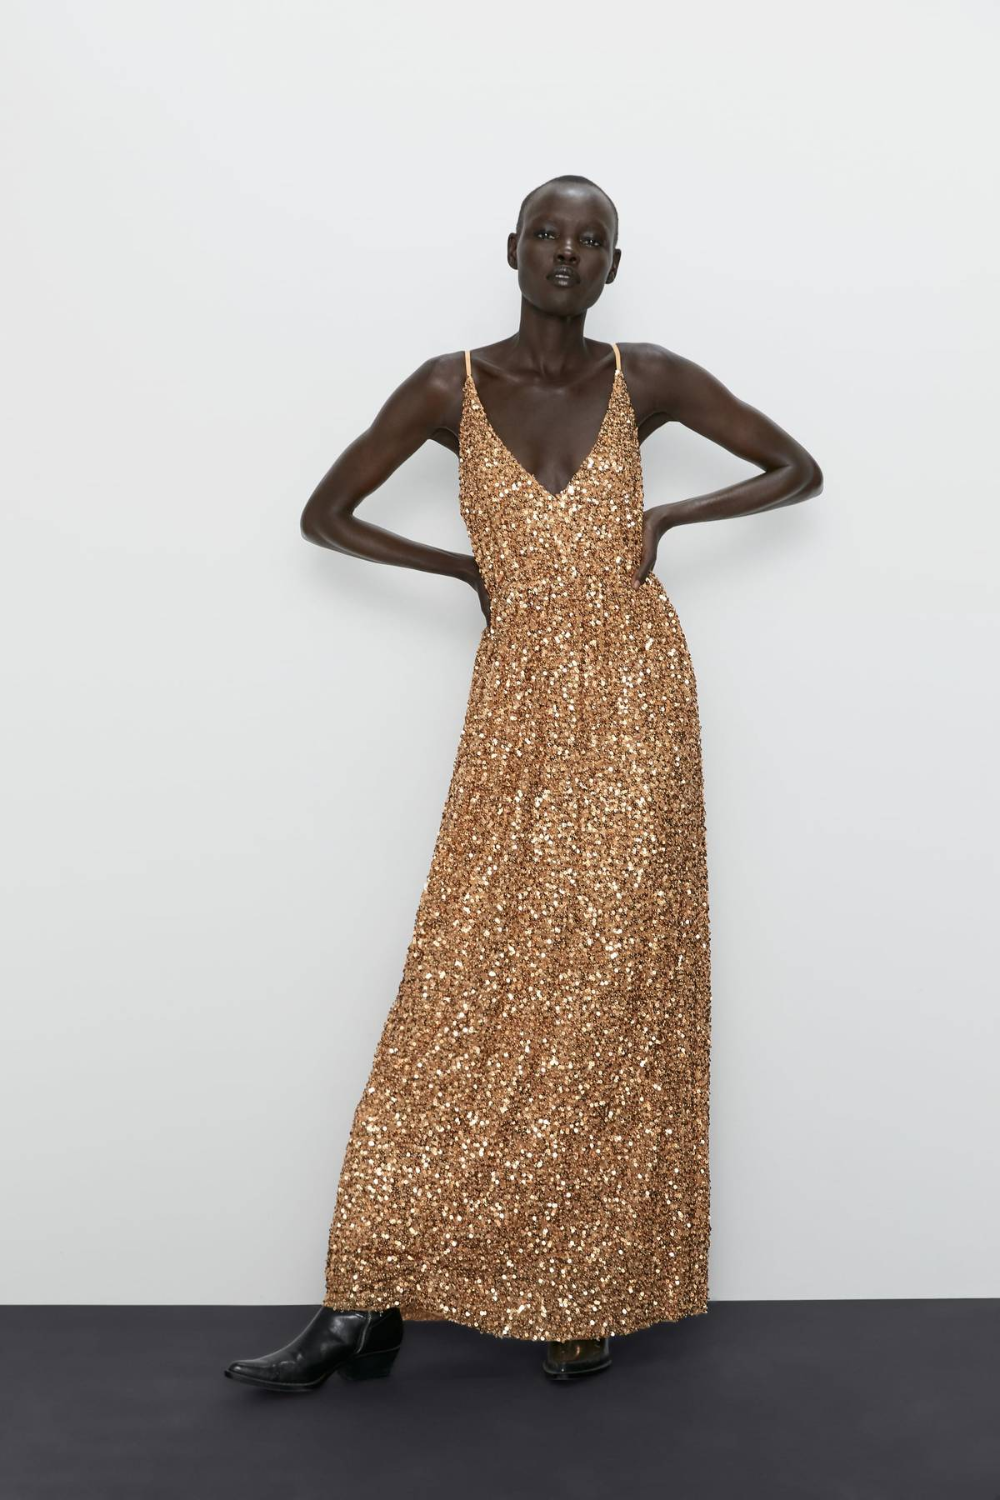 They Re Here The Best Zara Party Dresses Of 2019 In 2020 Sequin Dress Cute Dresses For Party Dresses